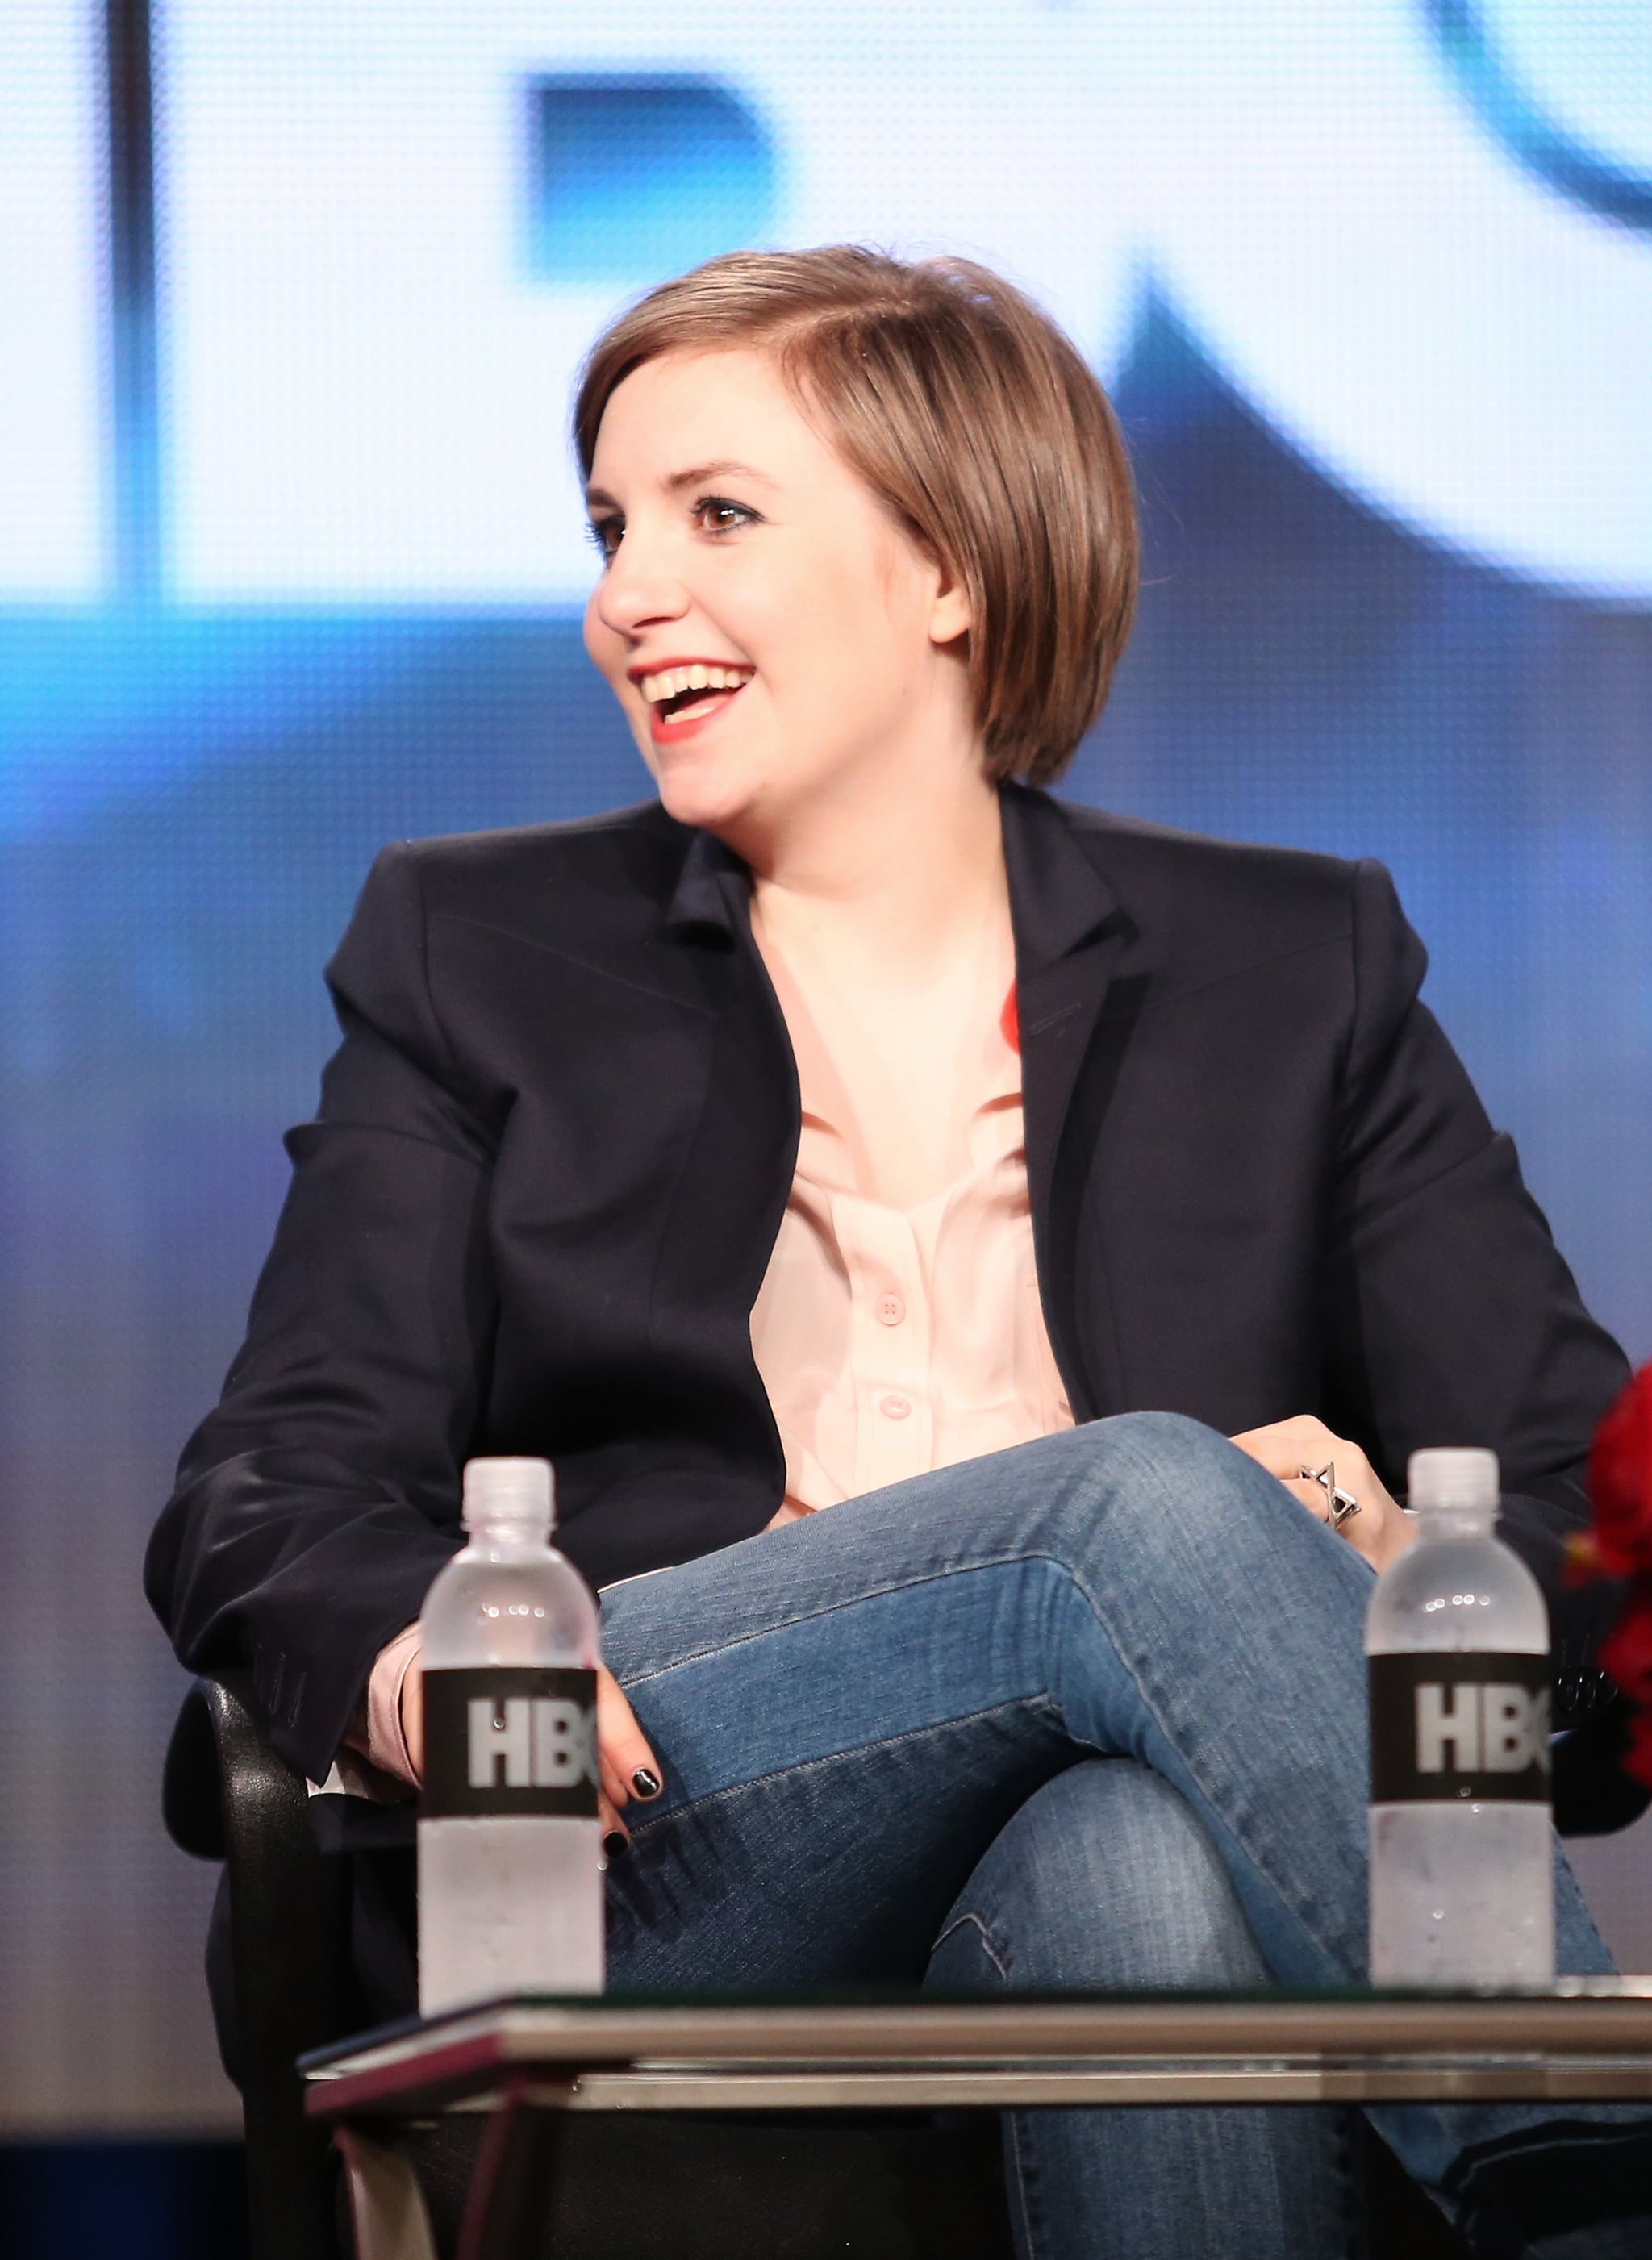 Lena Dunham attended the panel for Girls.